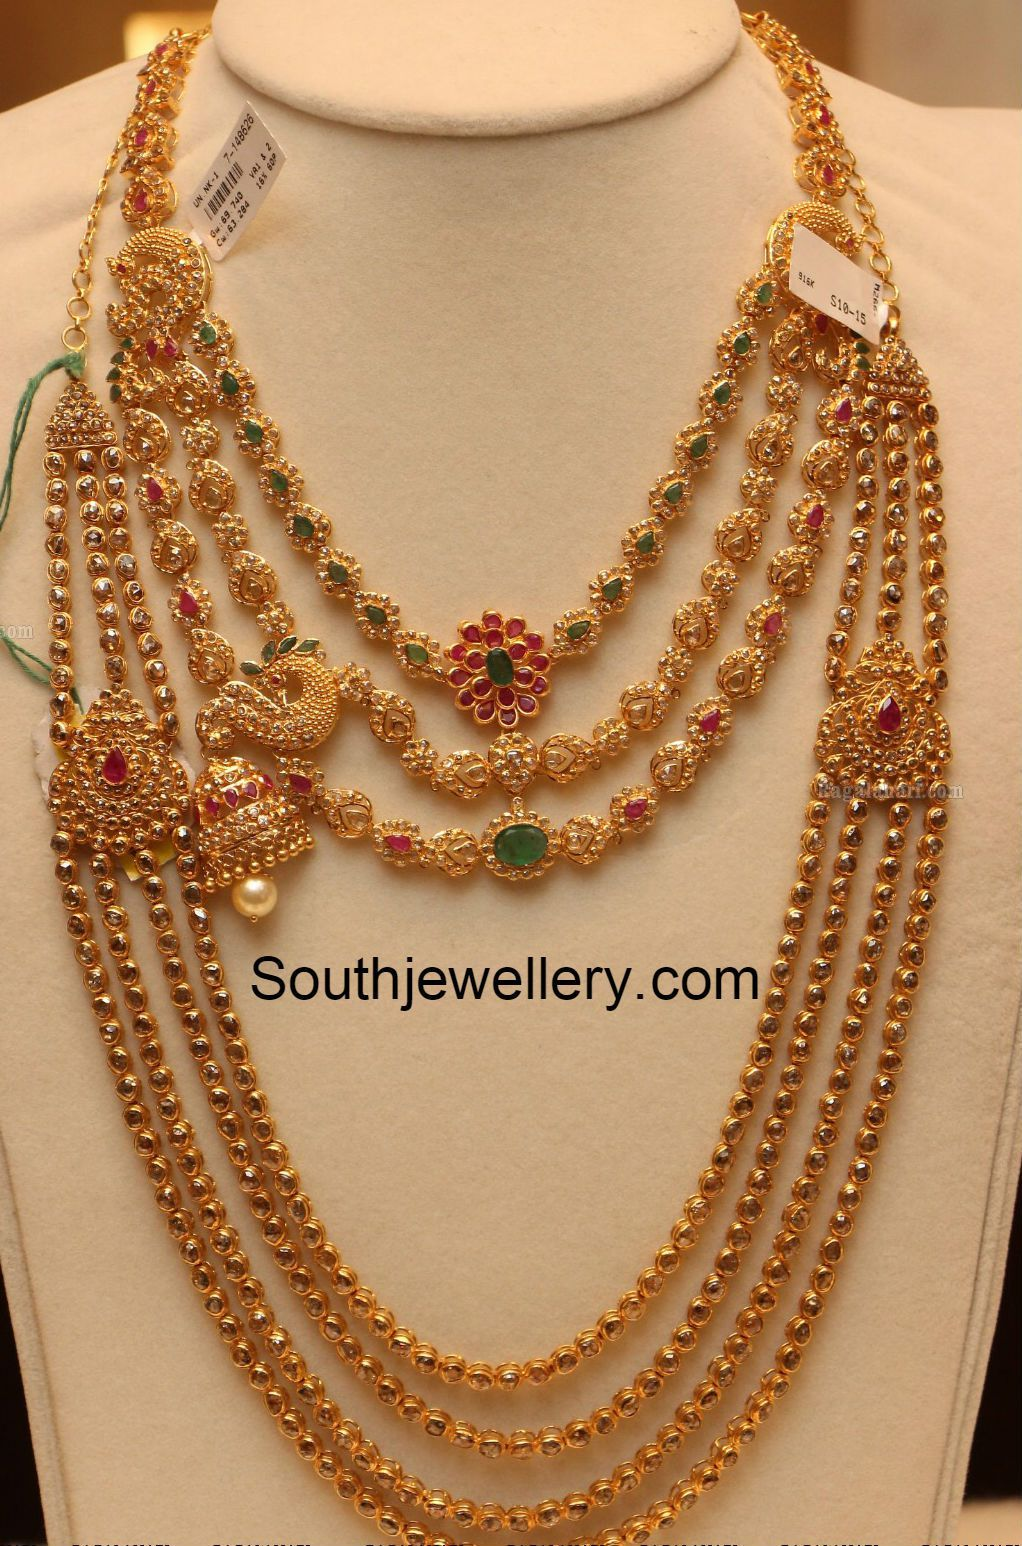 Indian Gold Jewelry · Uncut Diamond Necklace Latest Jewelry Designs